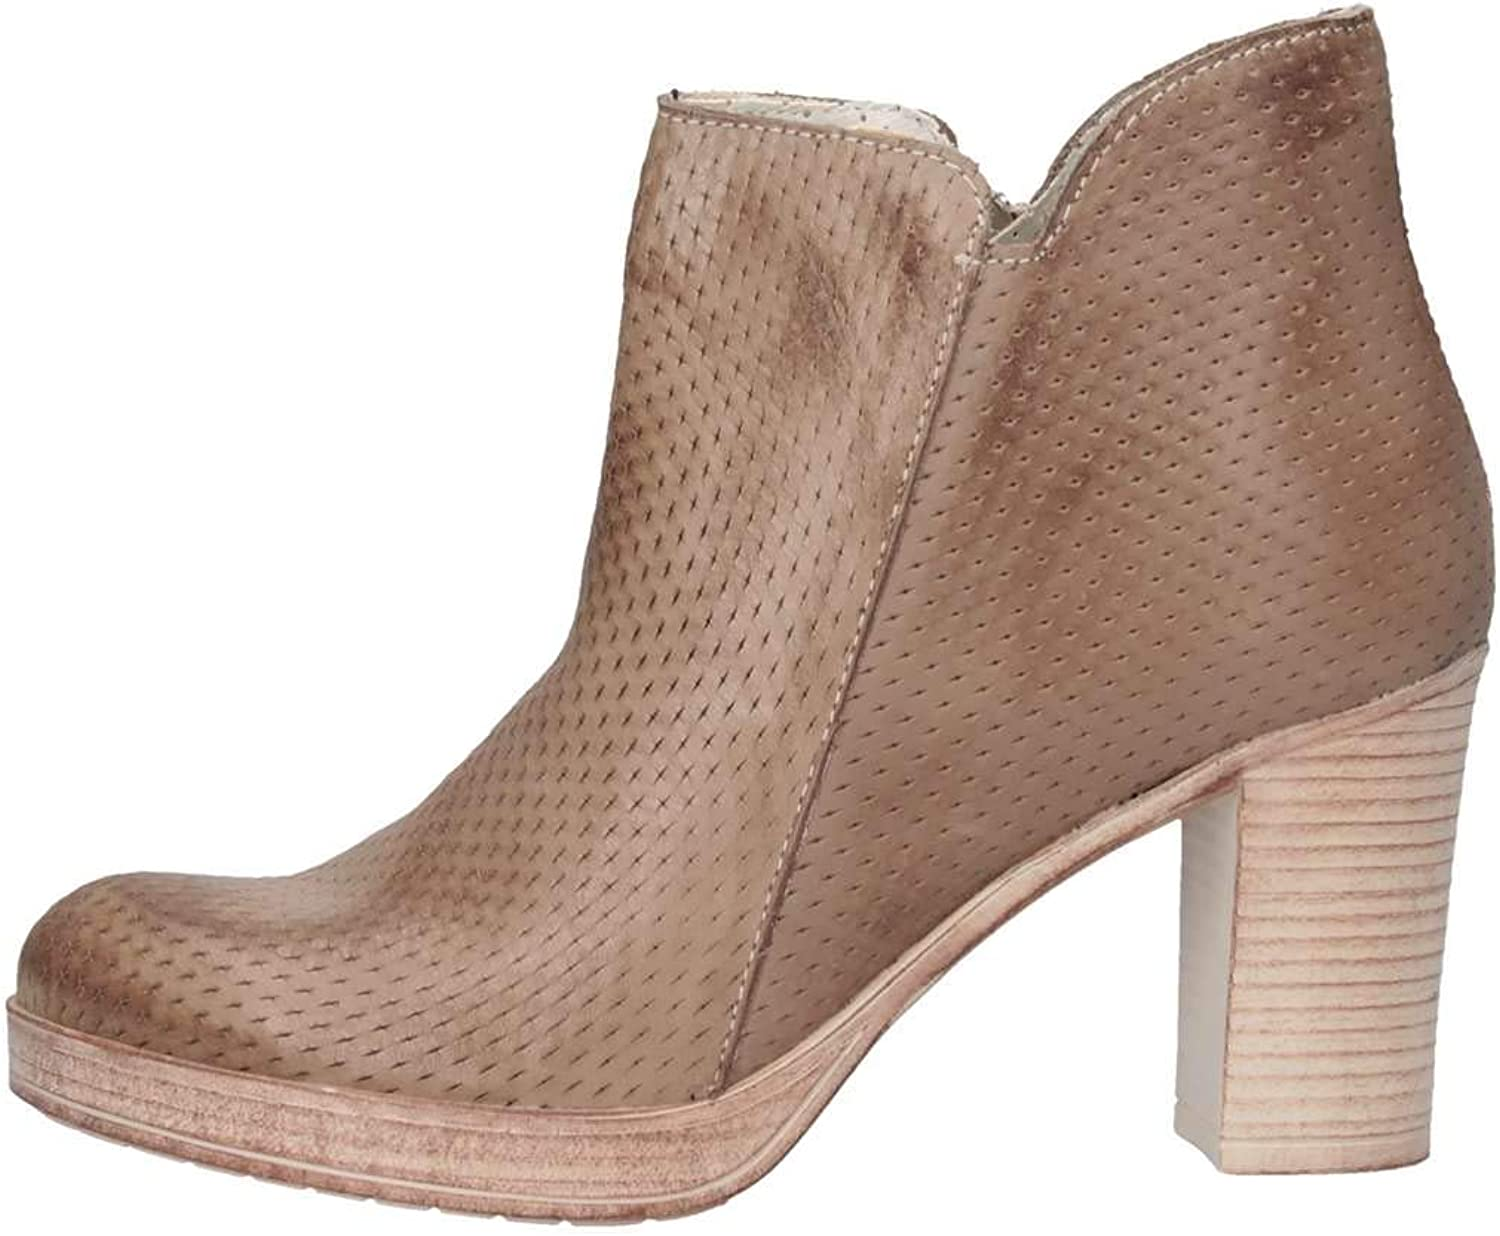 Bage Made In In  0243 Taupe Stiefeletten Frau  Blitzlieferung